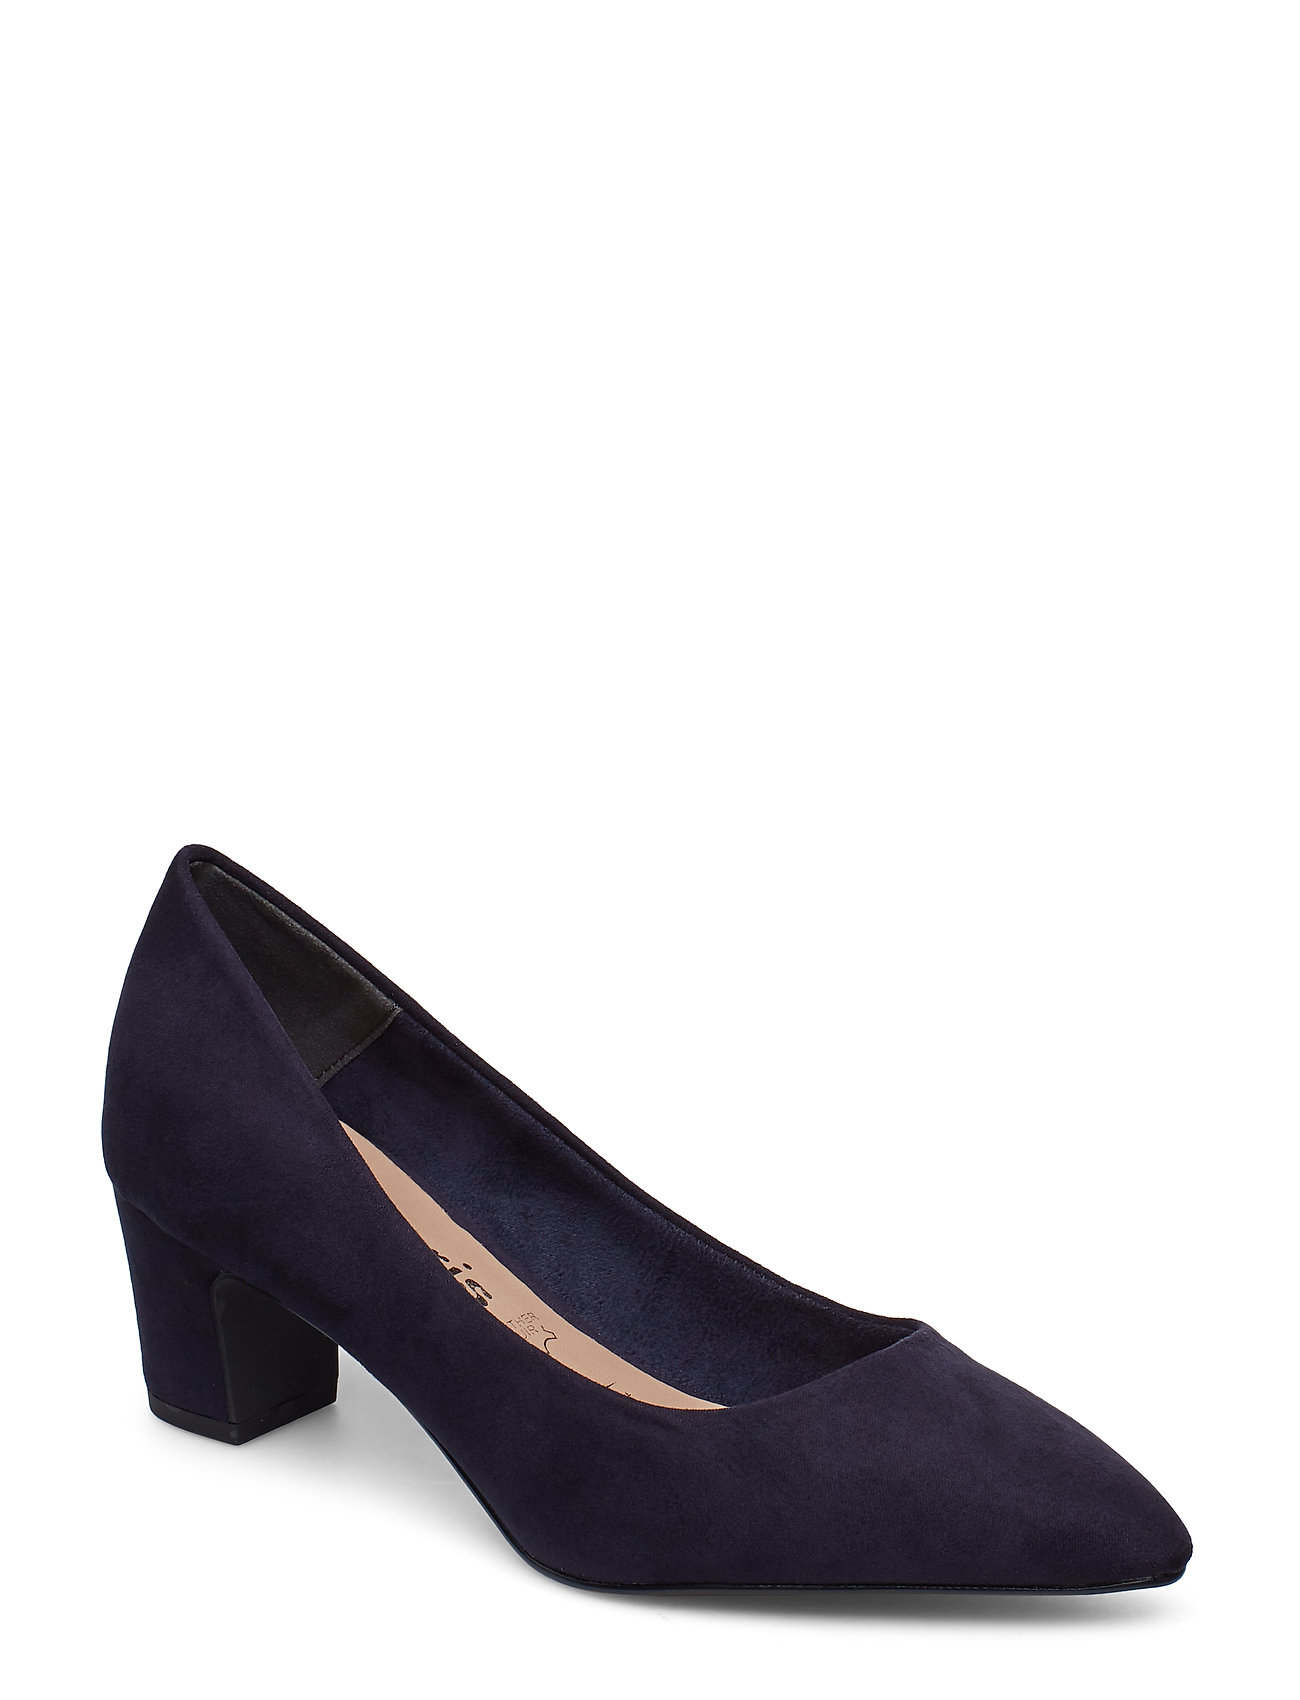 Tamaris Woms Court Shoe - NAVY